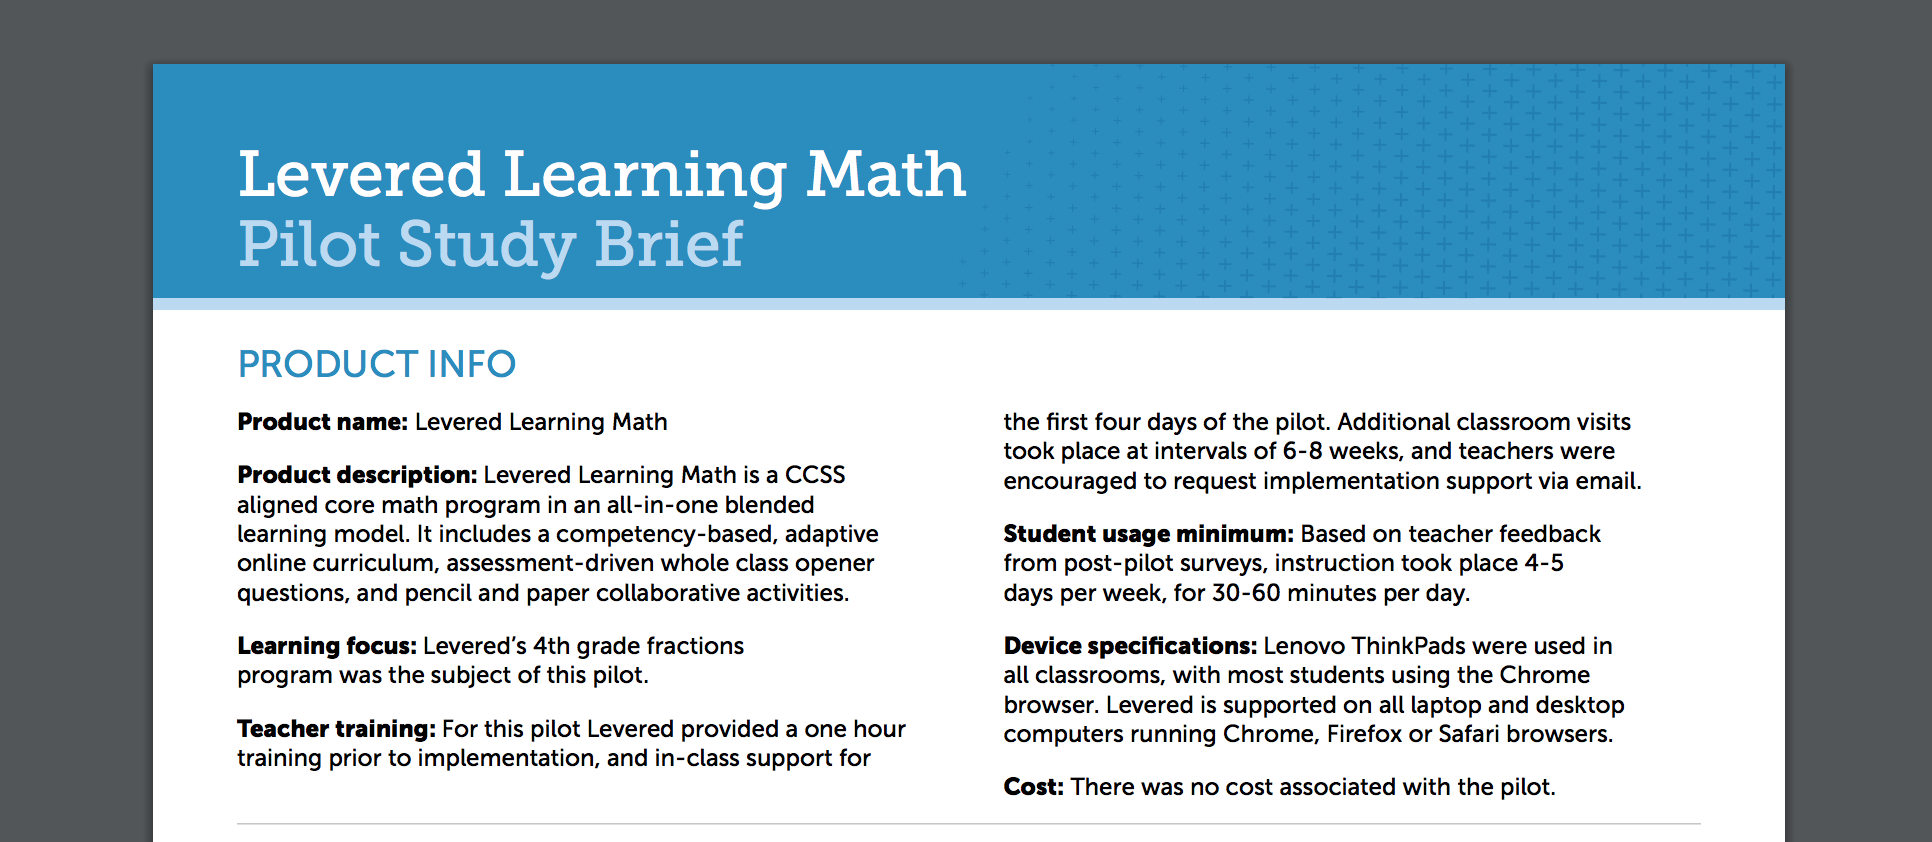 Digital Promise Publishes Teacher-led Brief on Levered's Math Program in Classrooms